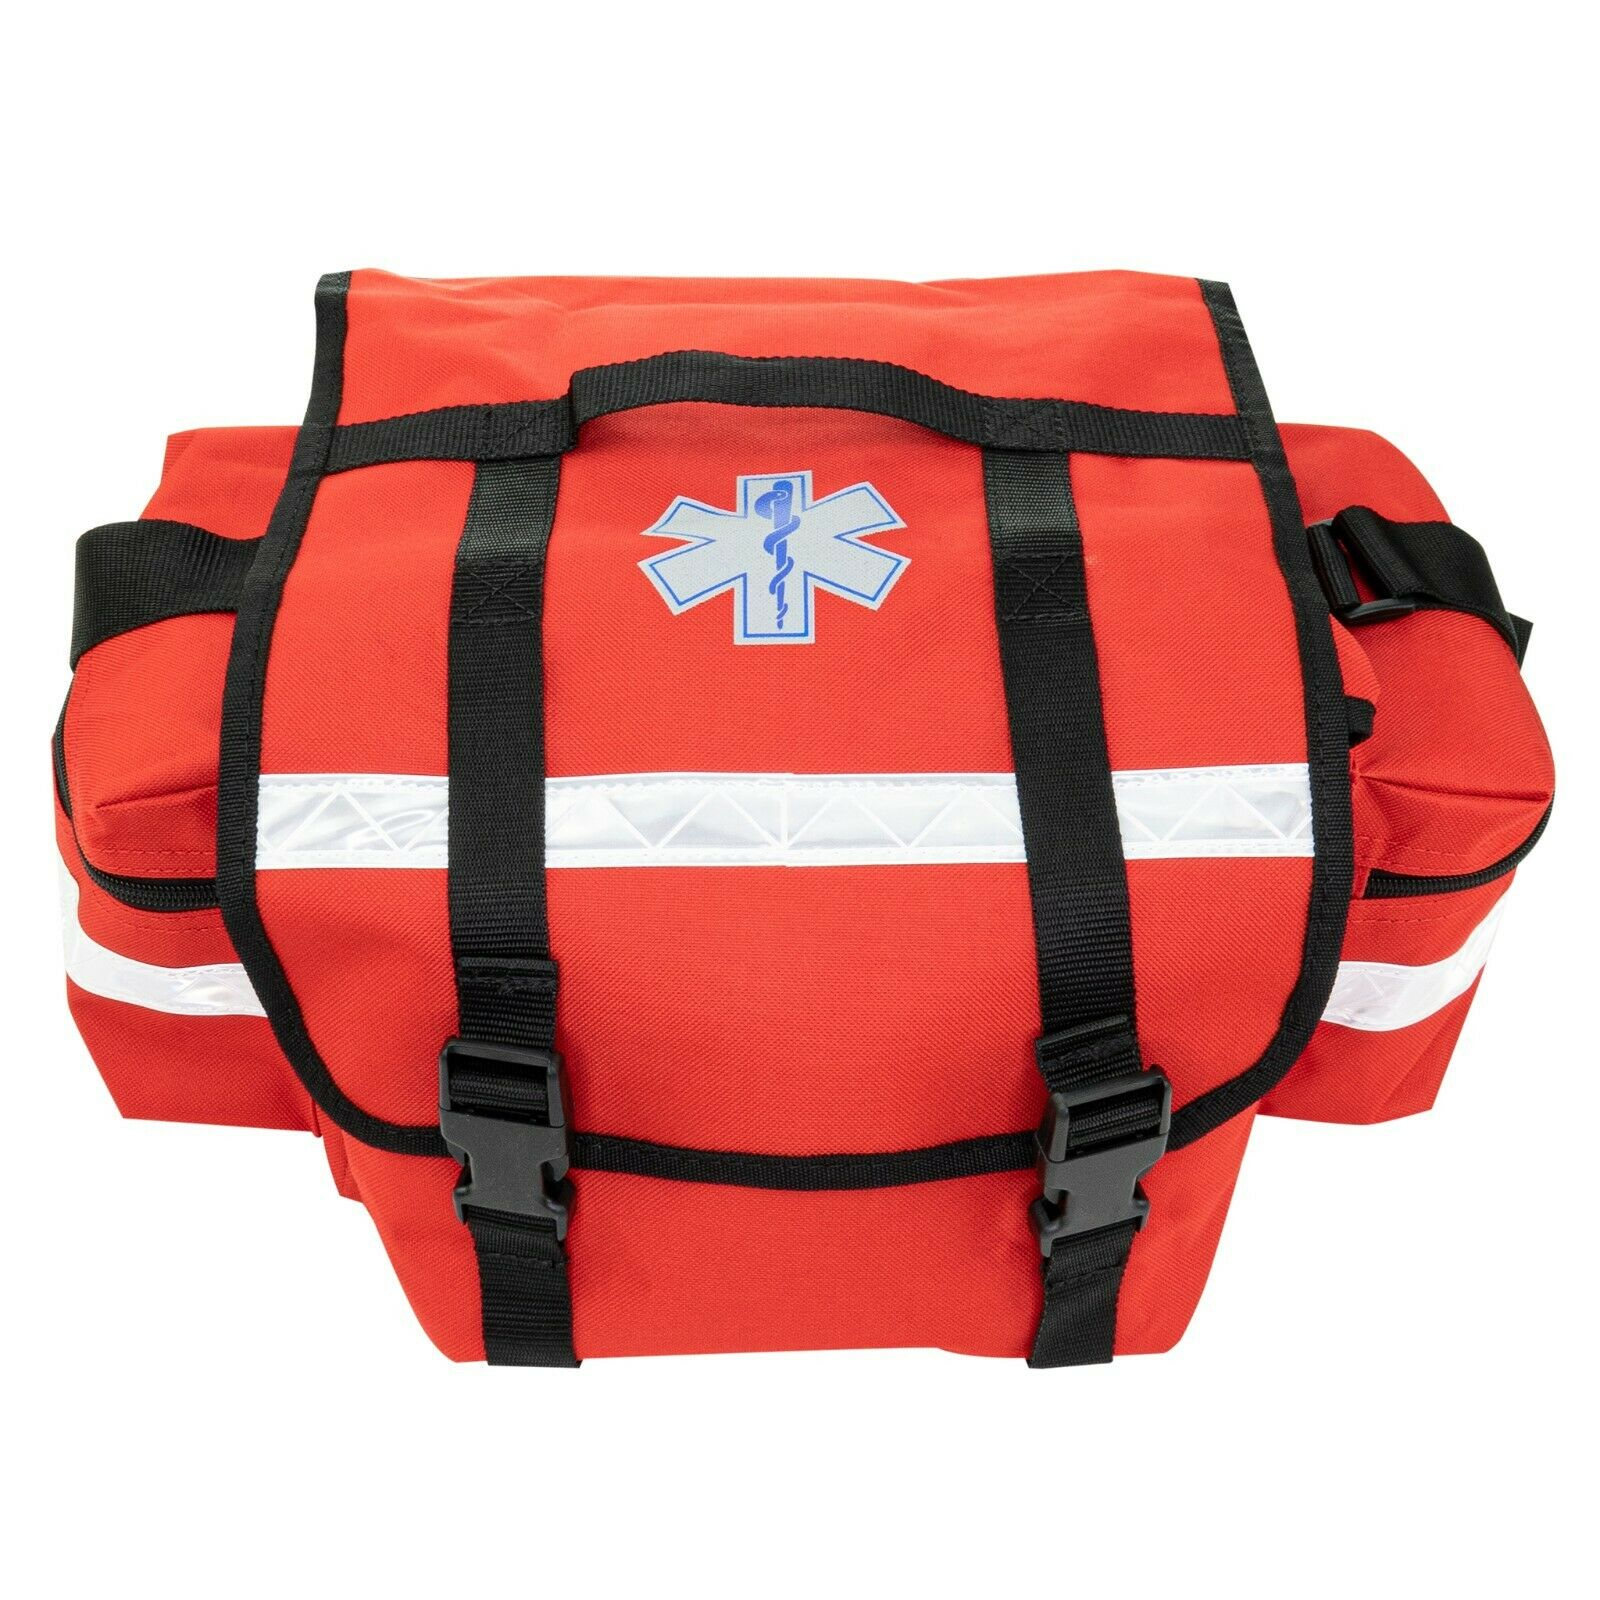 USED LINE2DESIGN FIRST AID BAG - MEDICAL SUPPLIES TRAUMA BAG WITH SHOULDER STRAP RED